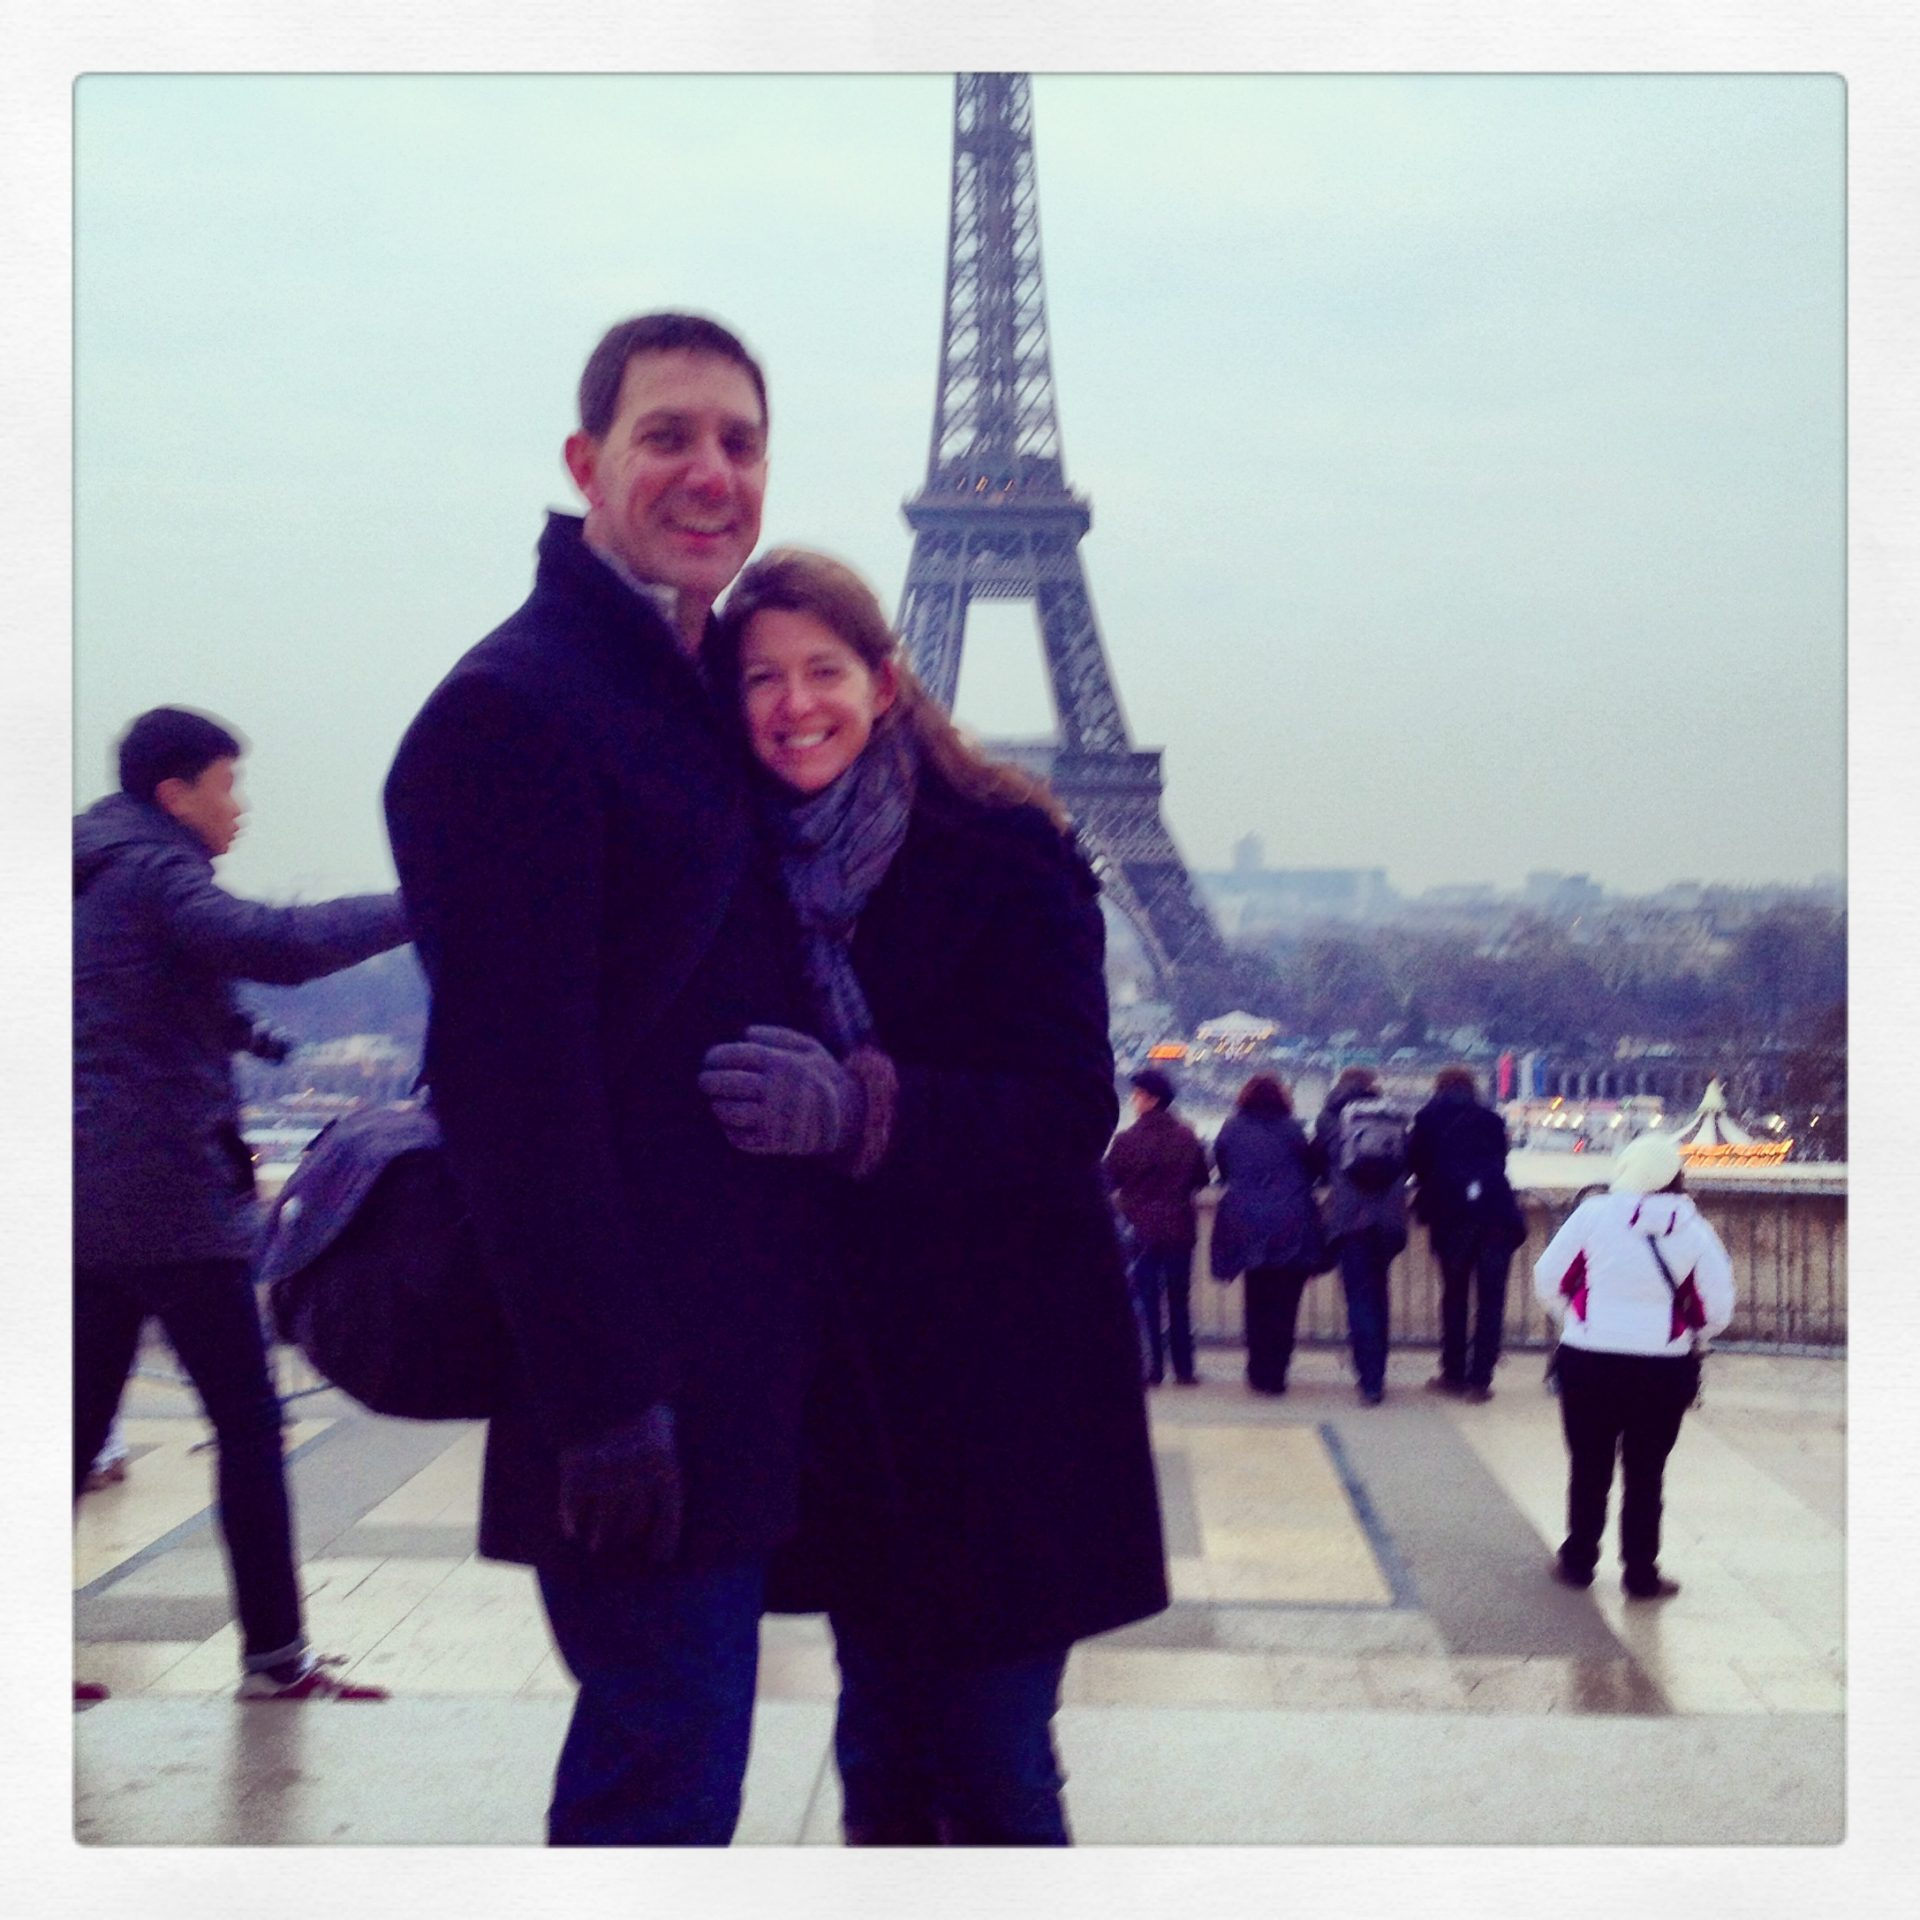 At the Eiffle Tower